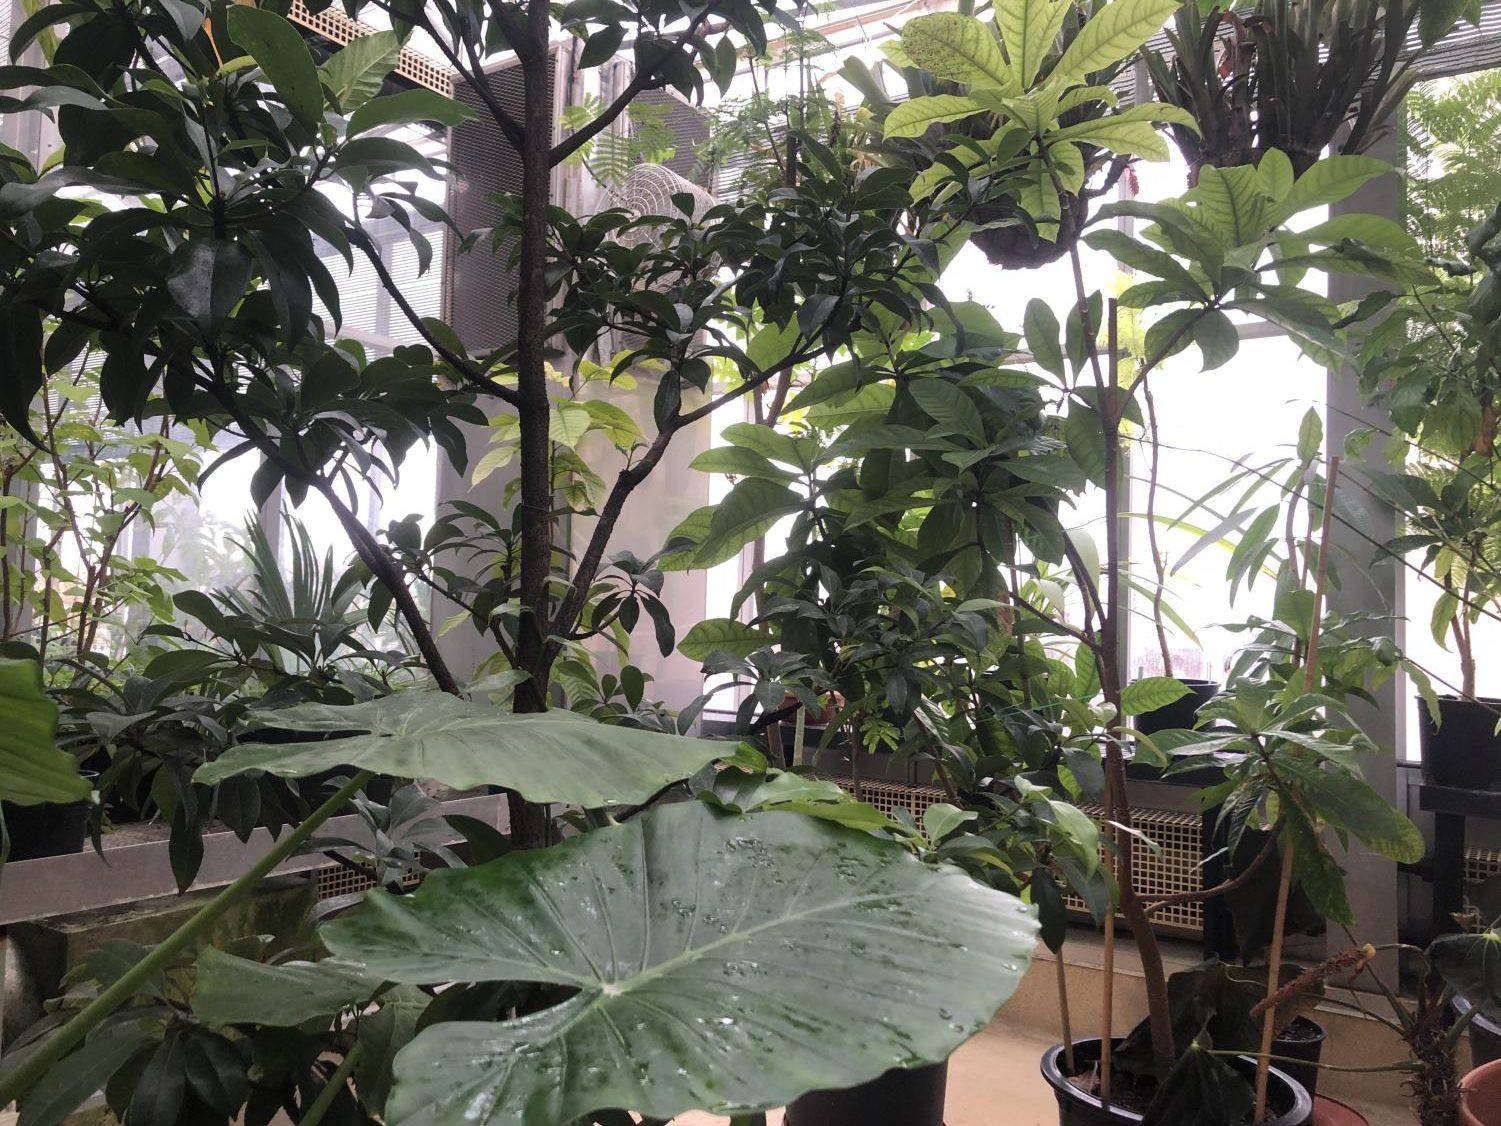 The greenhouse's seven rooms, five of which students can visit, are home to approximately 1,500 unique plant species